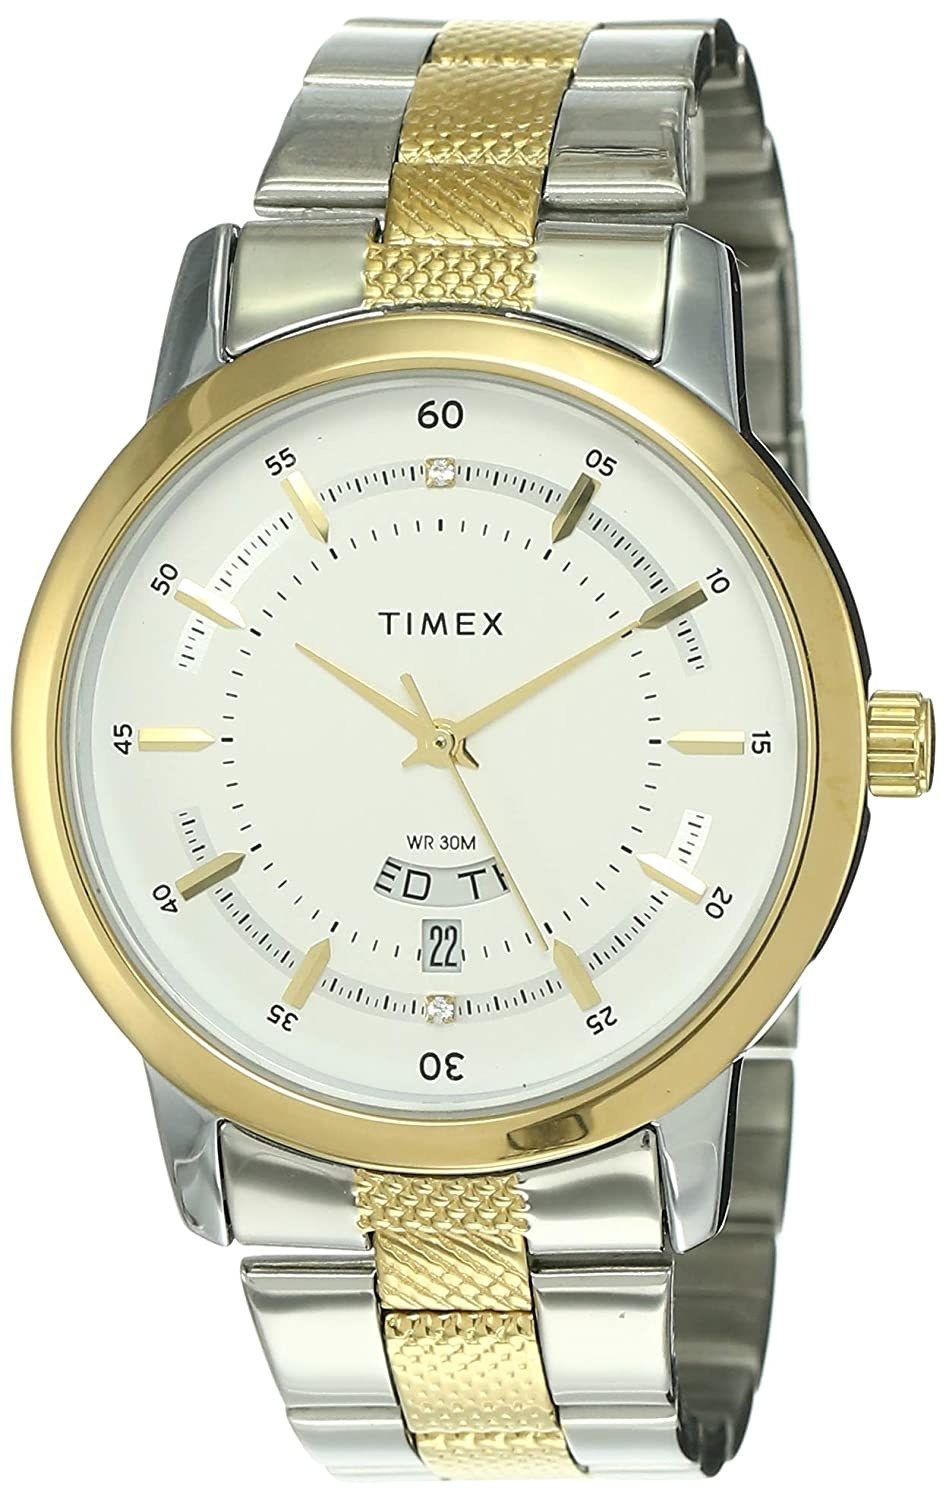 A silver and golden watch